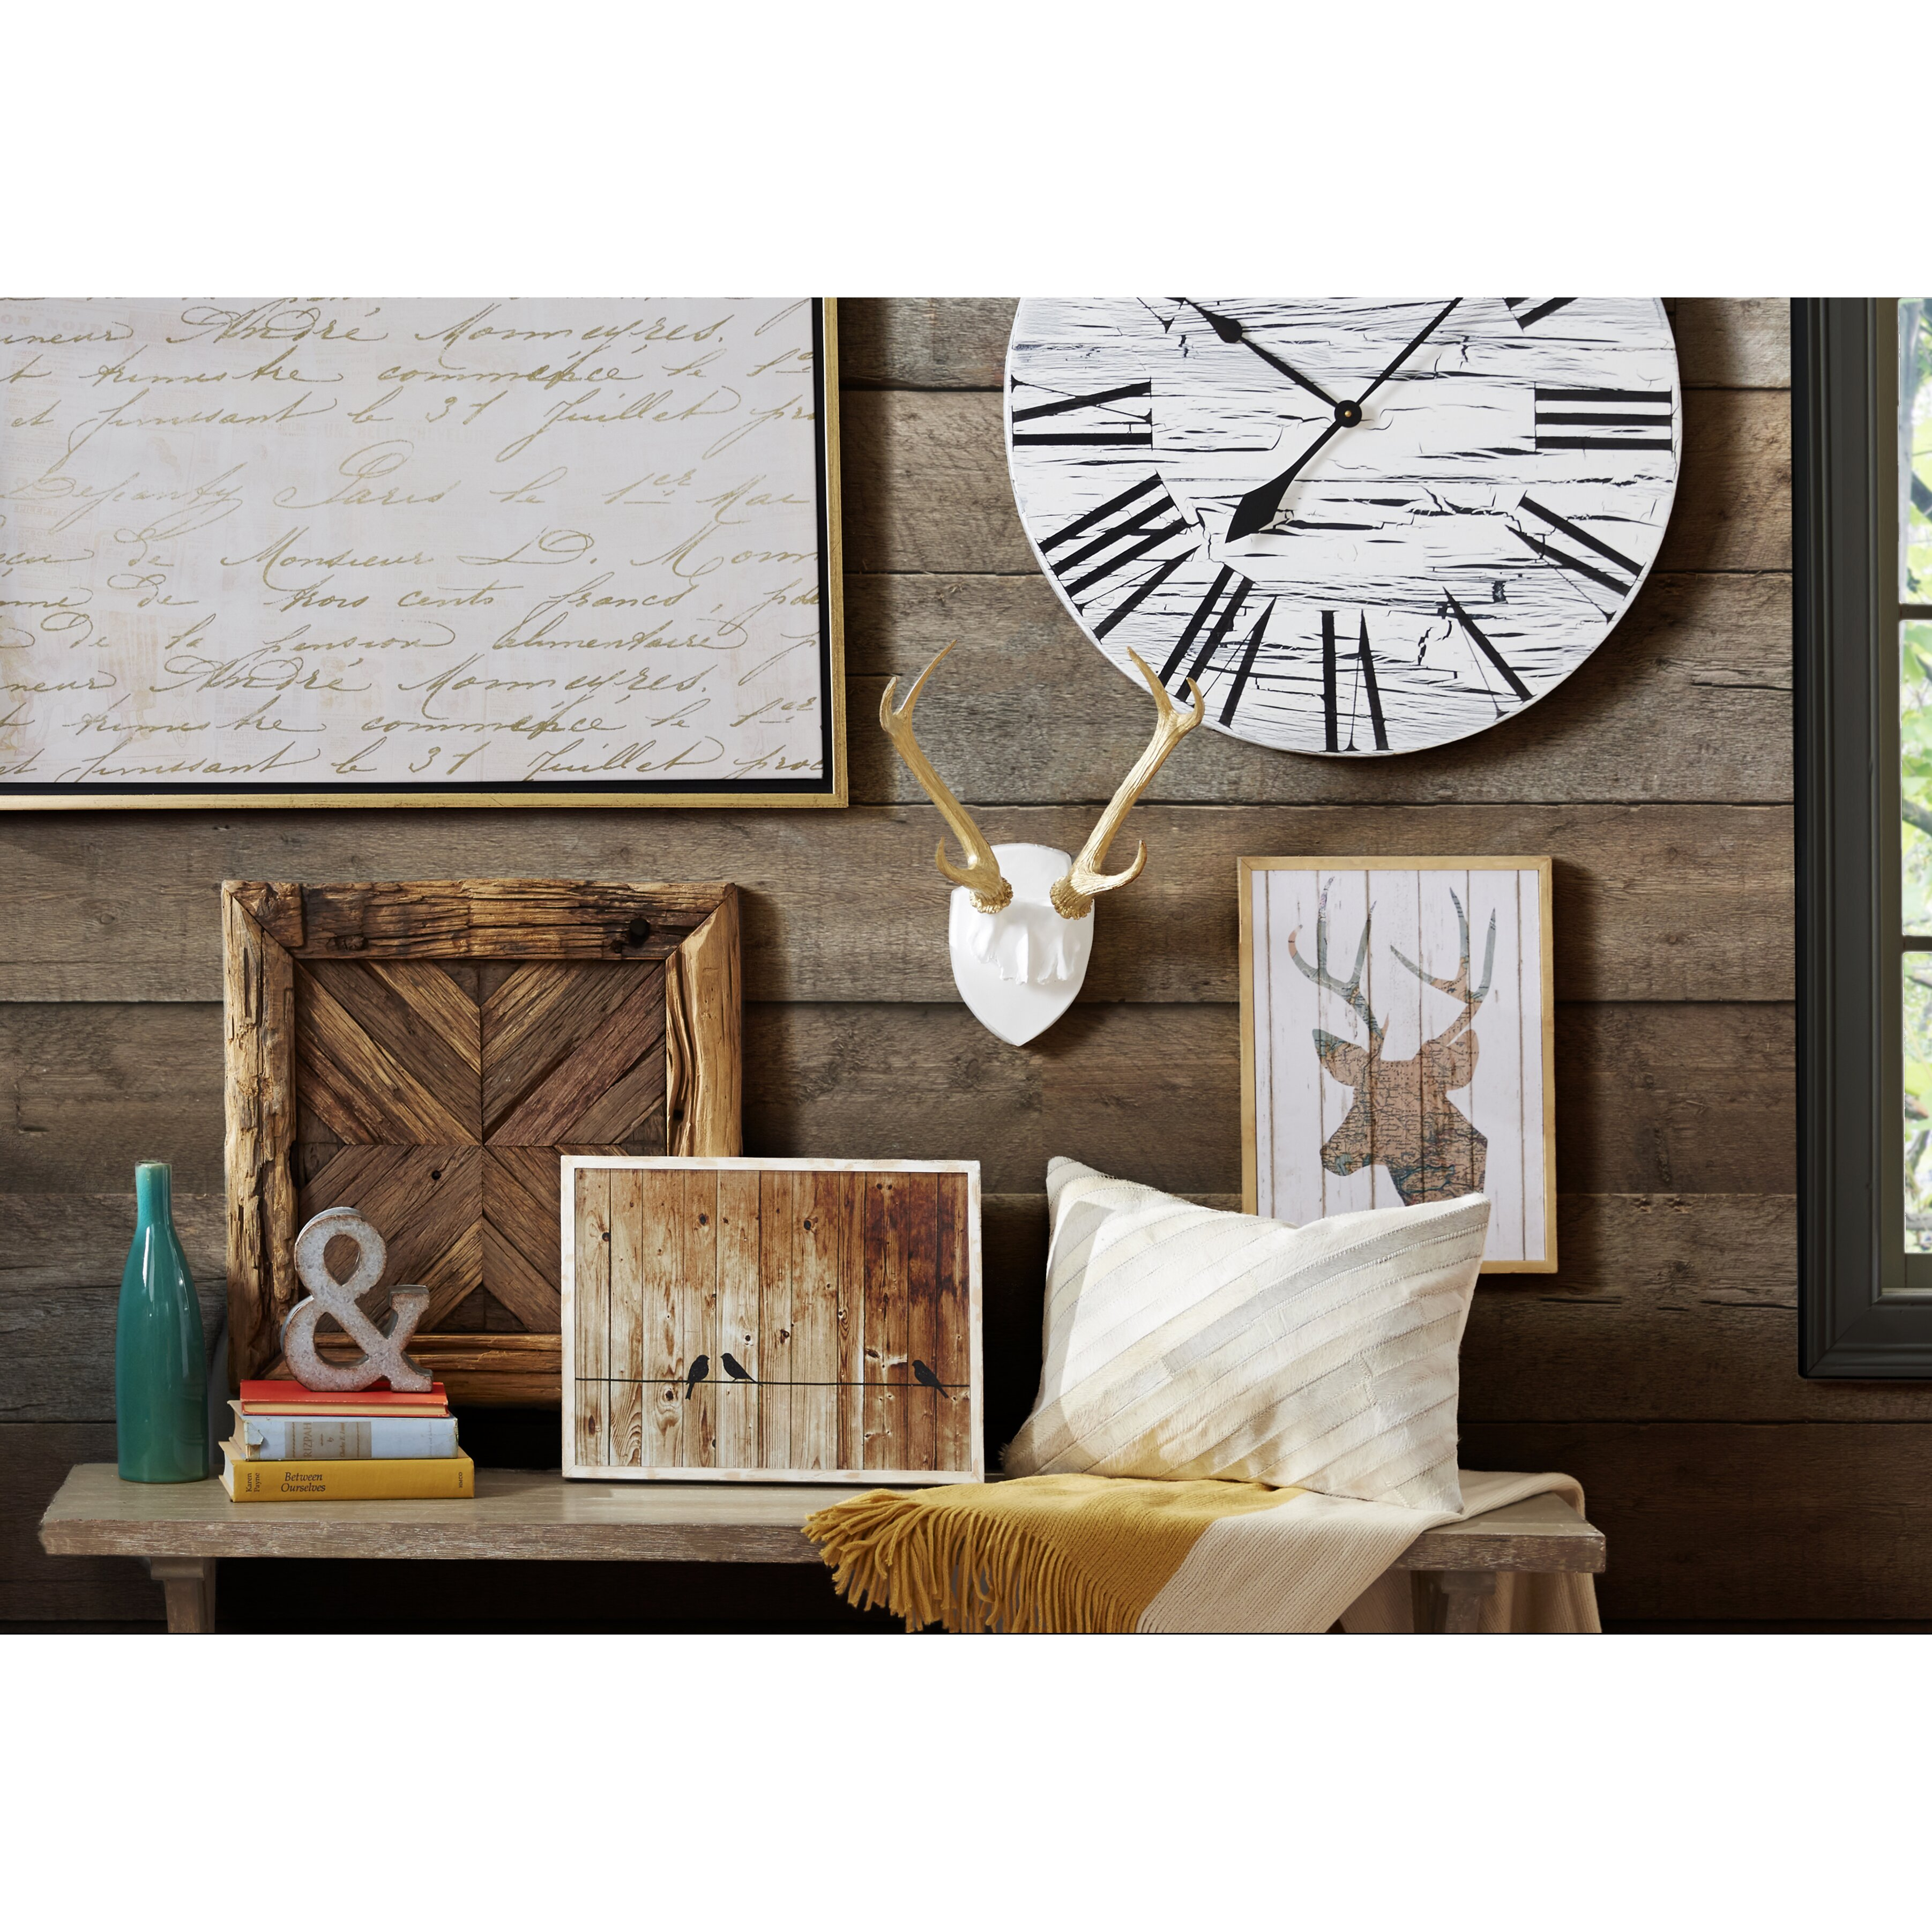 beautiful essex hand crafted wood products oversized uquot ockendon vintage with oversized vintage wall clock